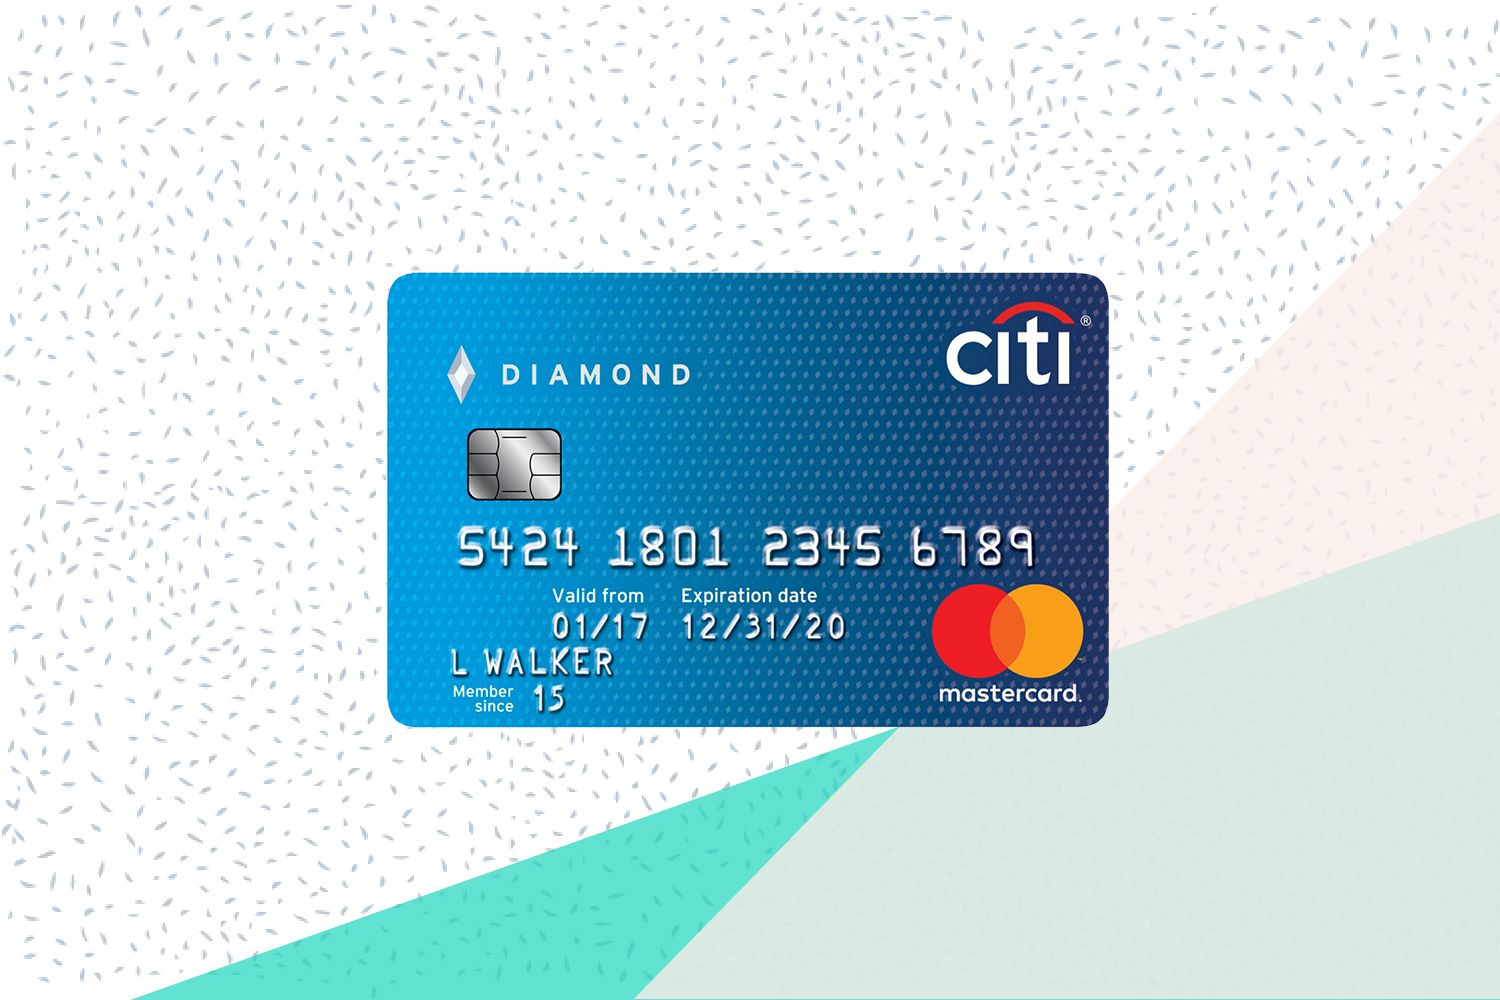 Citi Secured Mastercard Review: Worth the Effort?